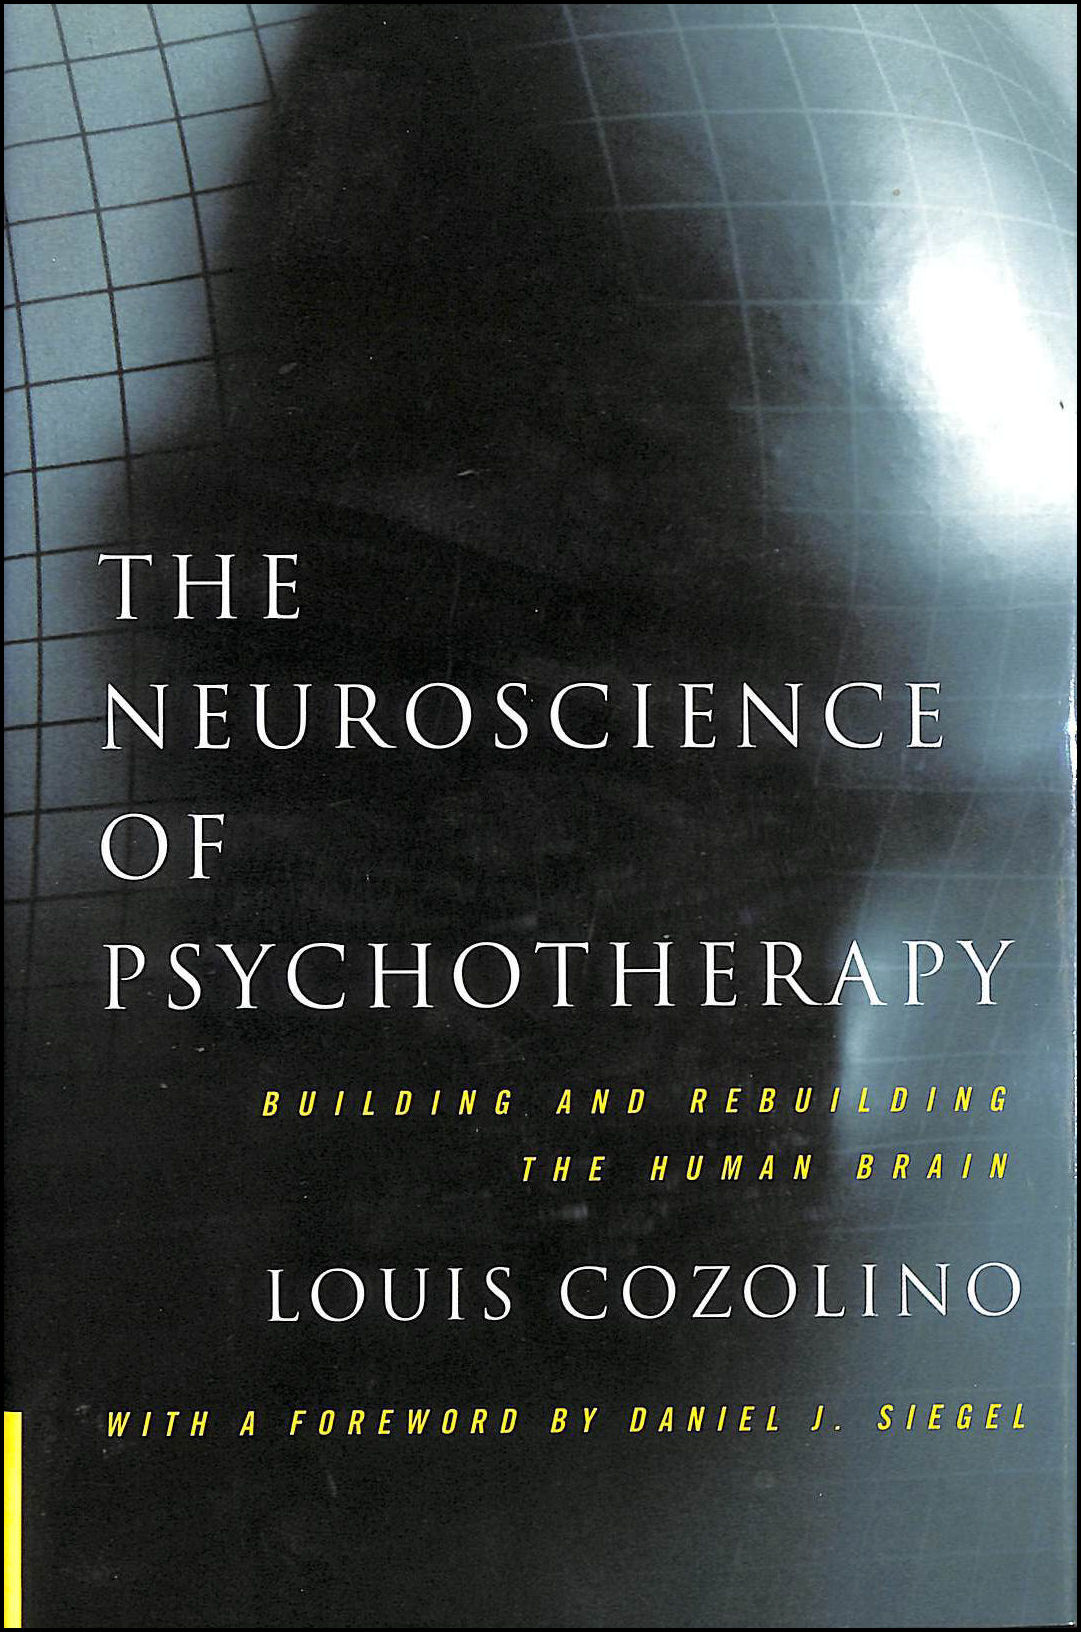 The Neuroscience of Psychotherapy: Building and Rebuilding the Human Brain, Cozolino, Louis